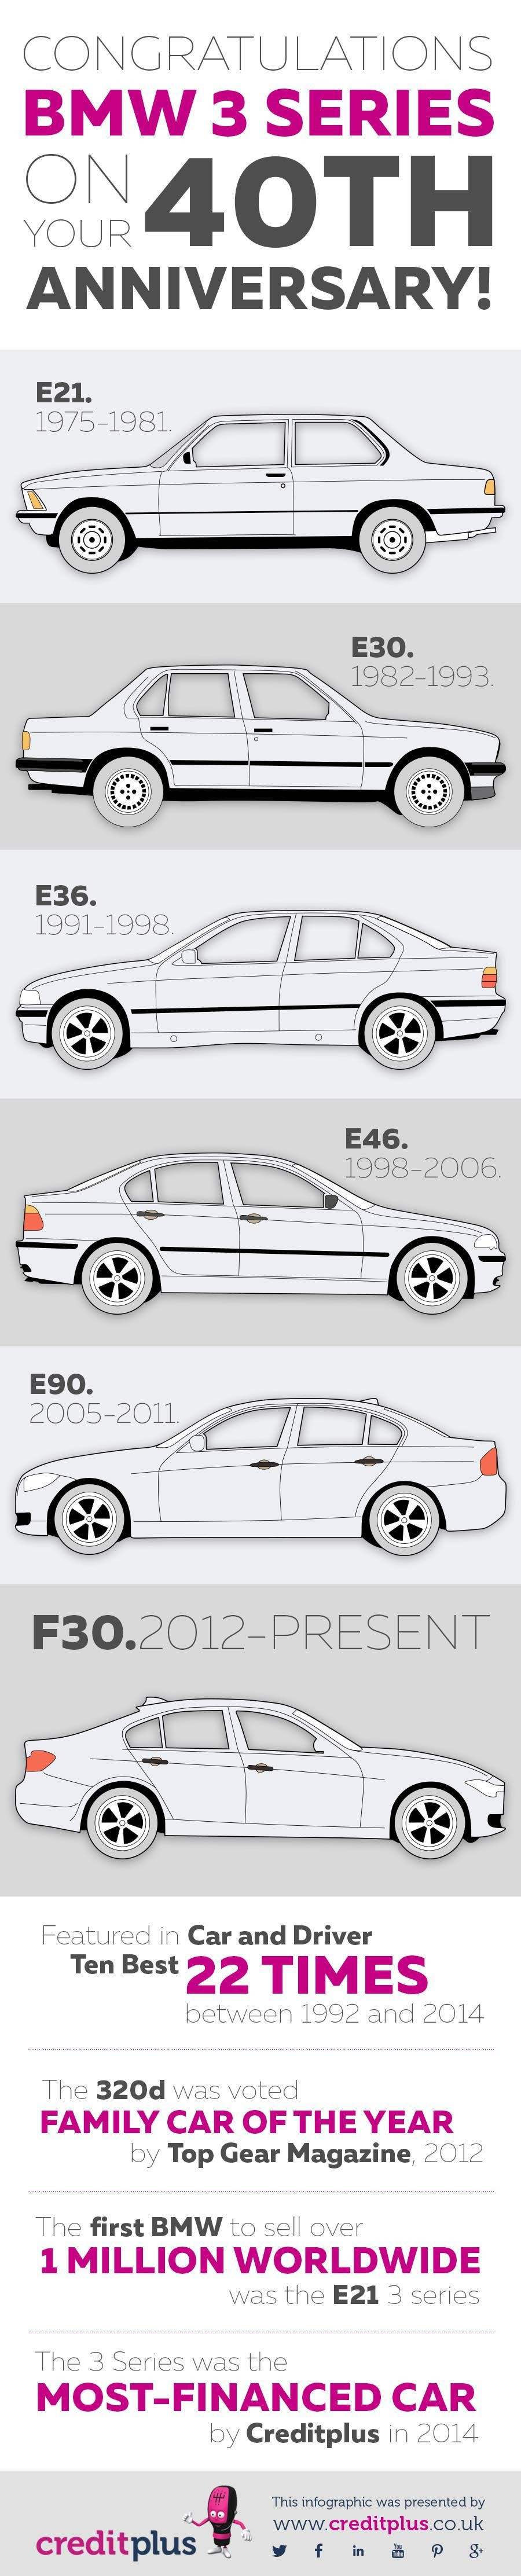 BMW 3-series history infographic